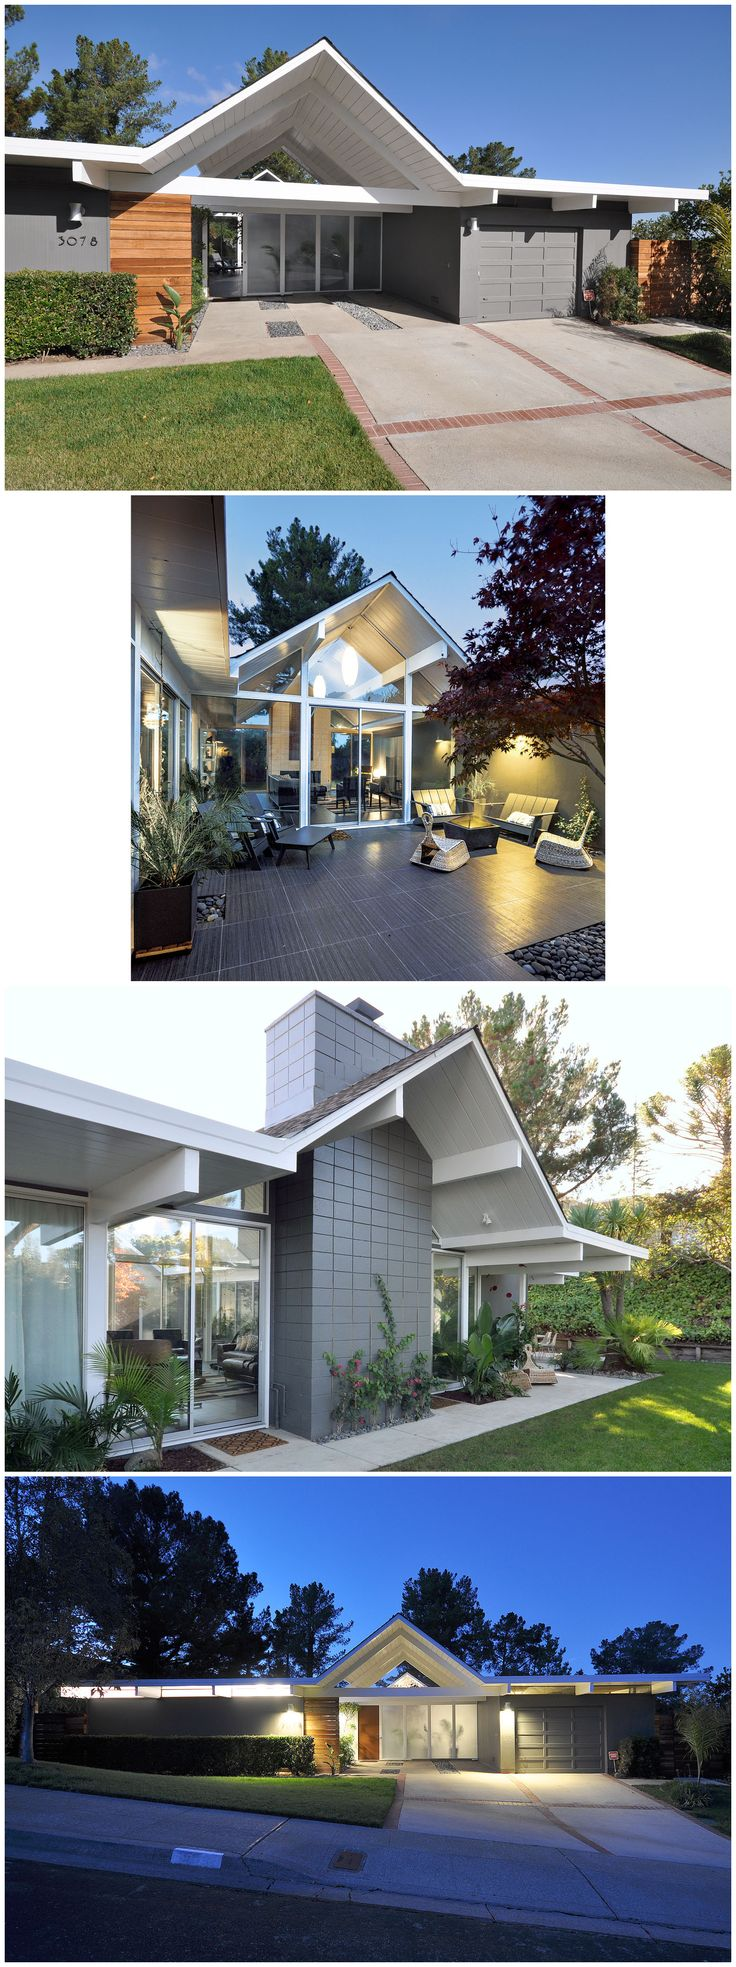 2015 best remodel award goes to San Francisco architect John Klopf; home originally built by Joseph Eichler in 1964. The double-gable home, with a carport placed under the front gable, was a popular Eichler design. Located just inside the front door, is an open atrium with seating, shade and a firepit. The lines of the double-gable design are especially dramatic at night, when the narrow windows set high in street-facing walls create a bold horizontal line across the entire front of the…